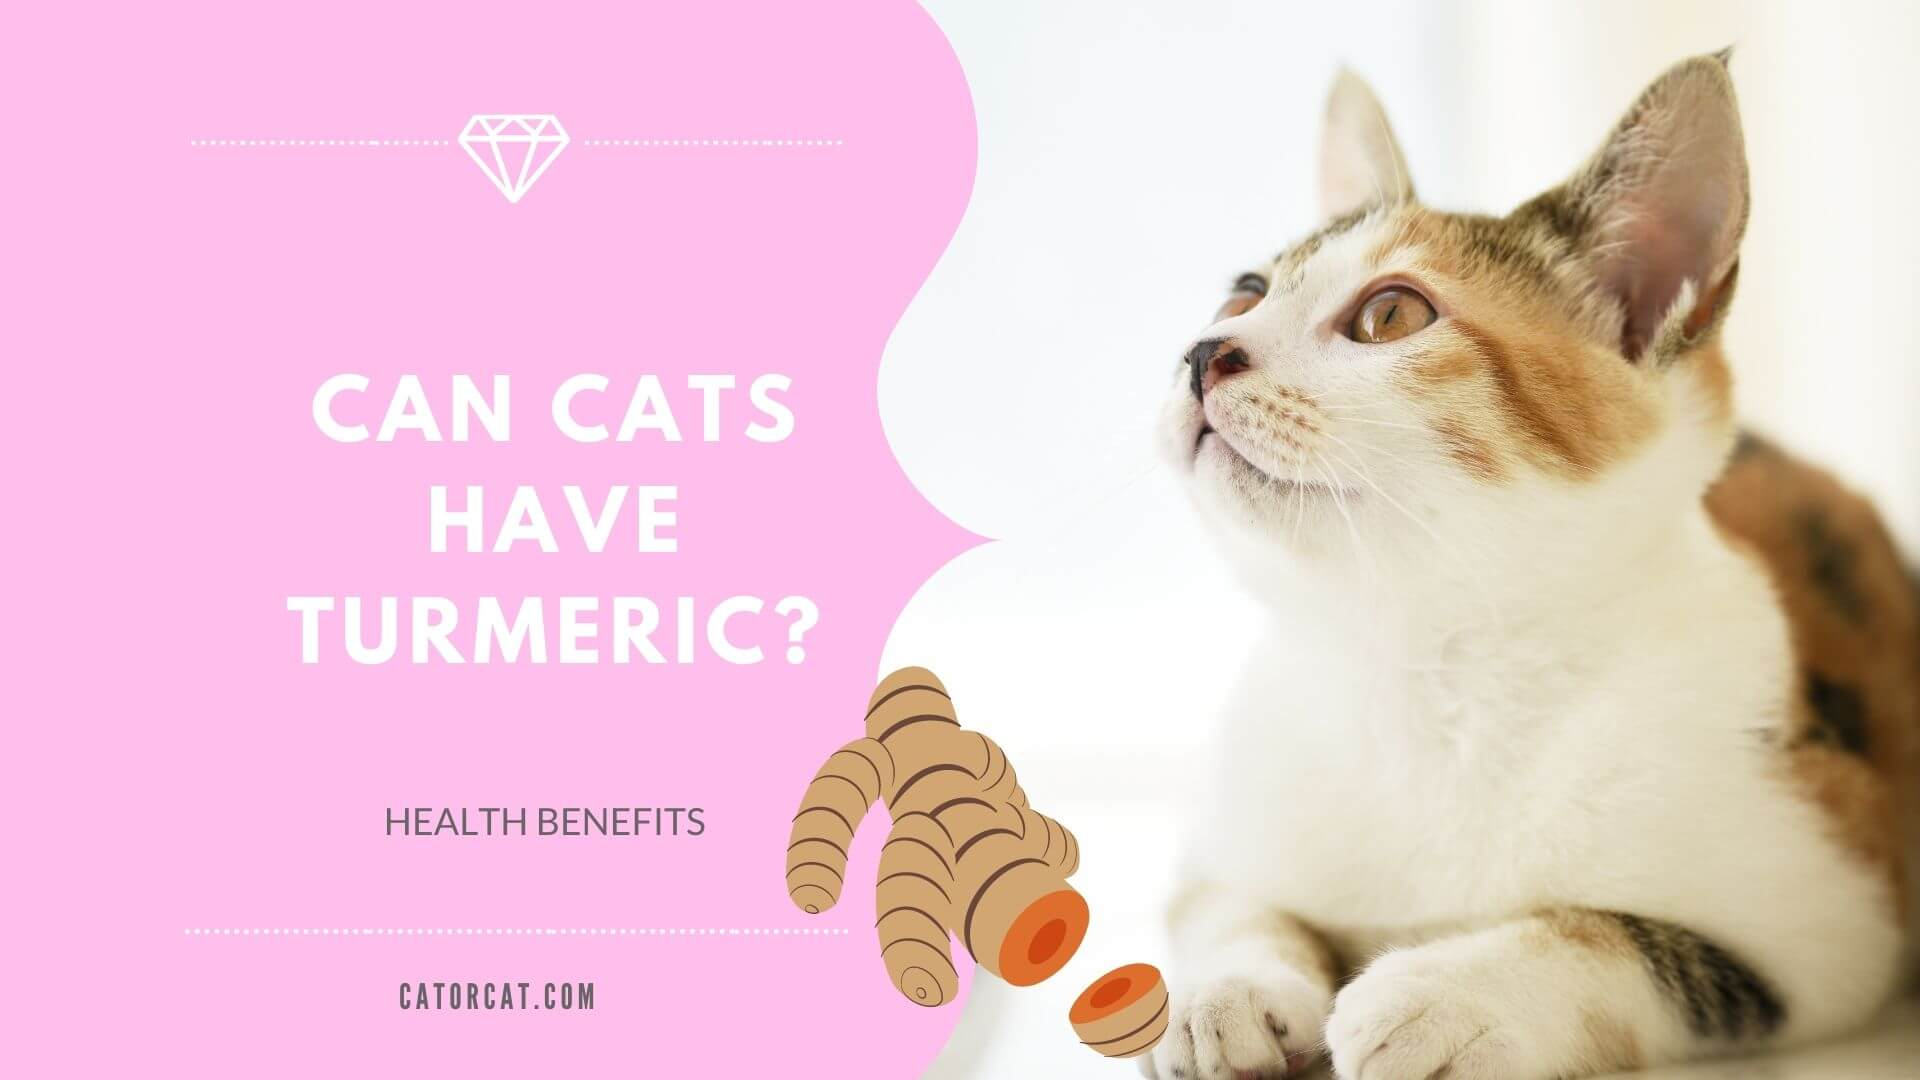 is turmeric safe for cats